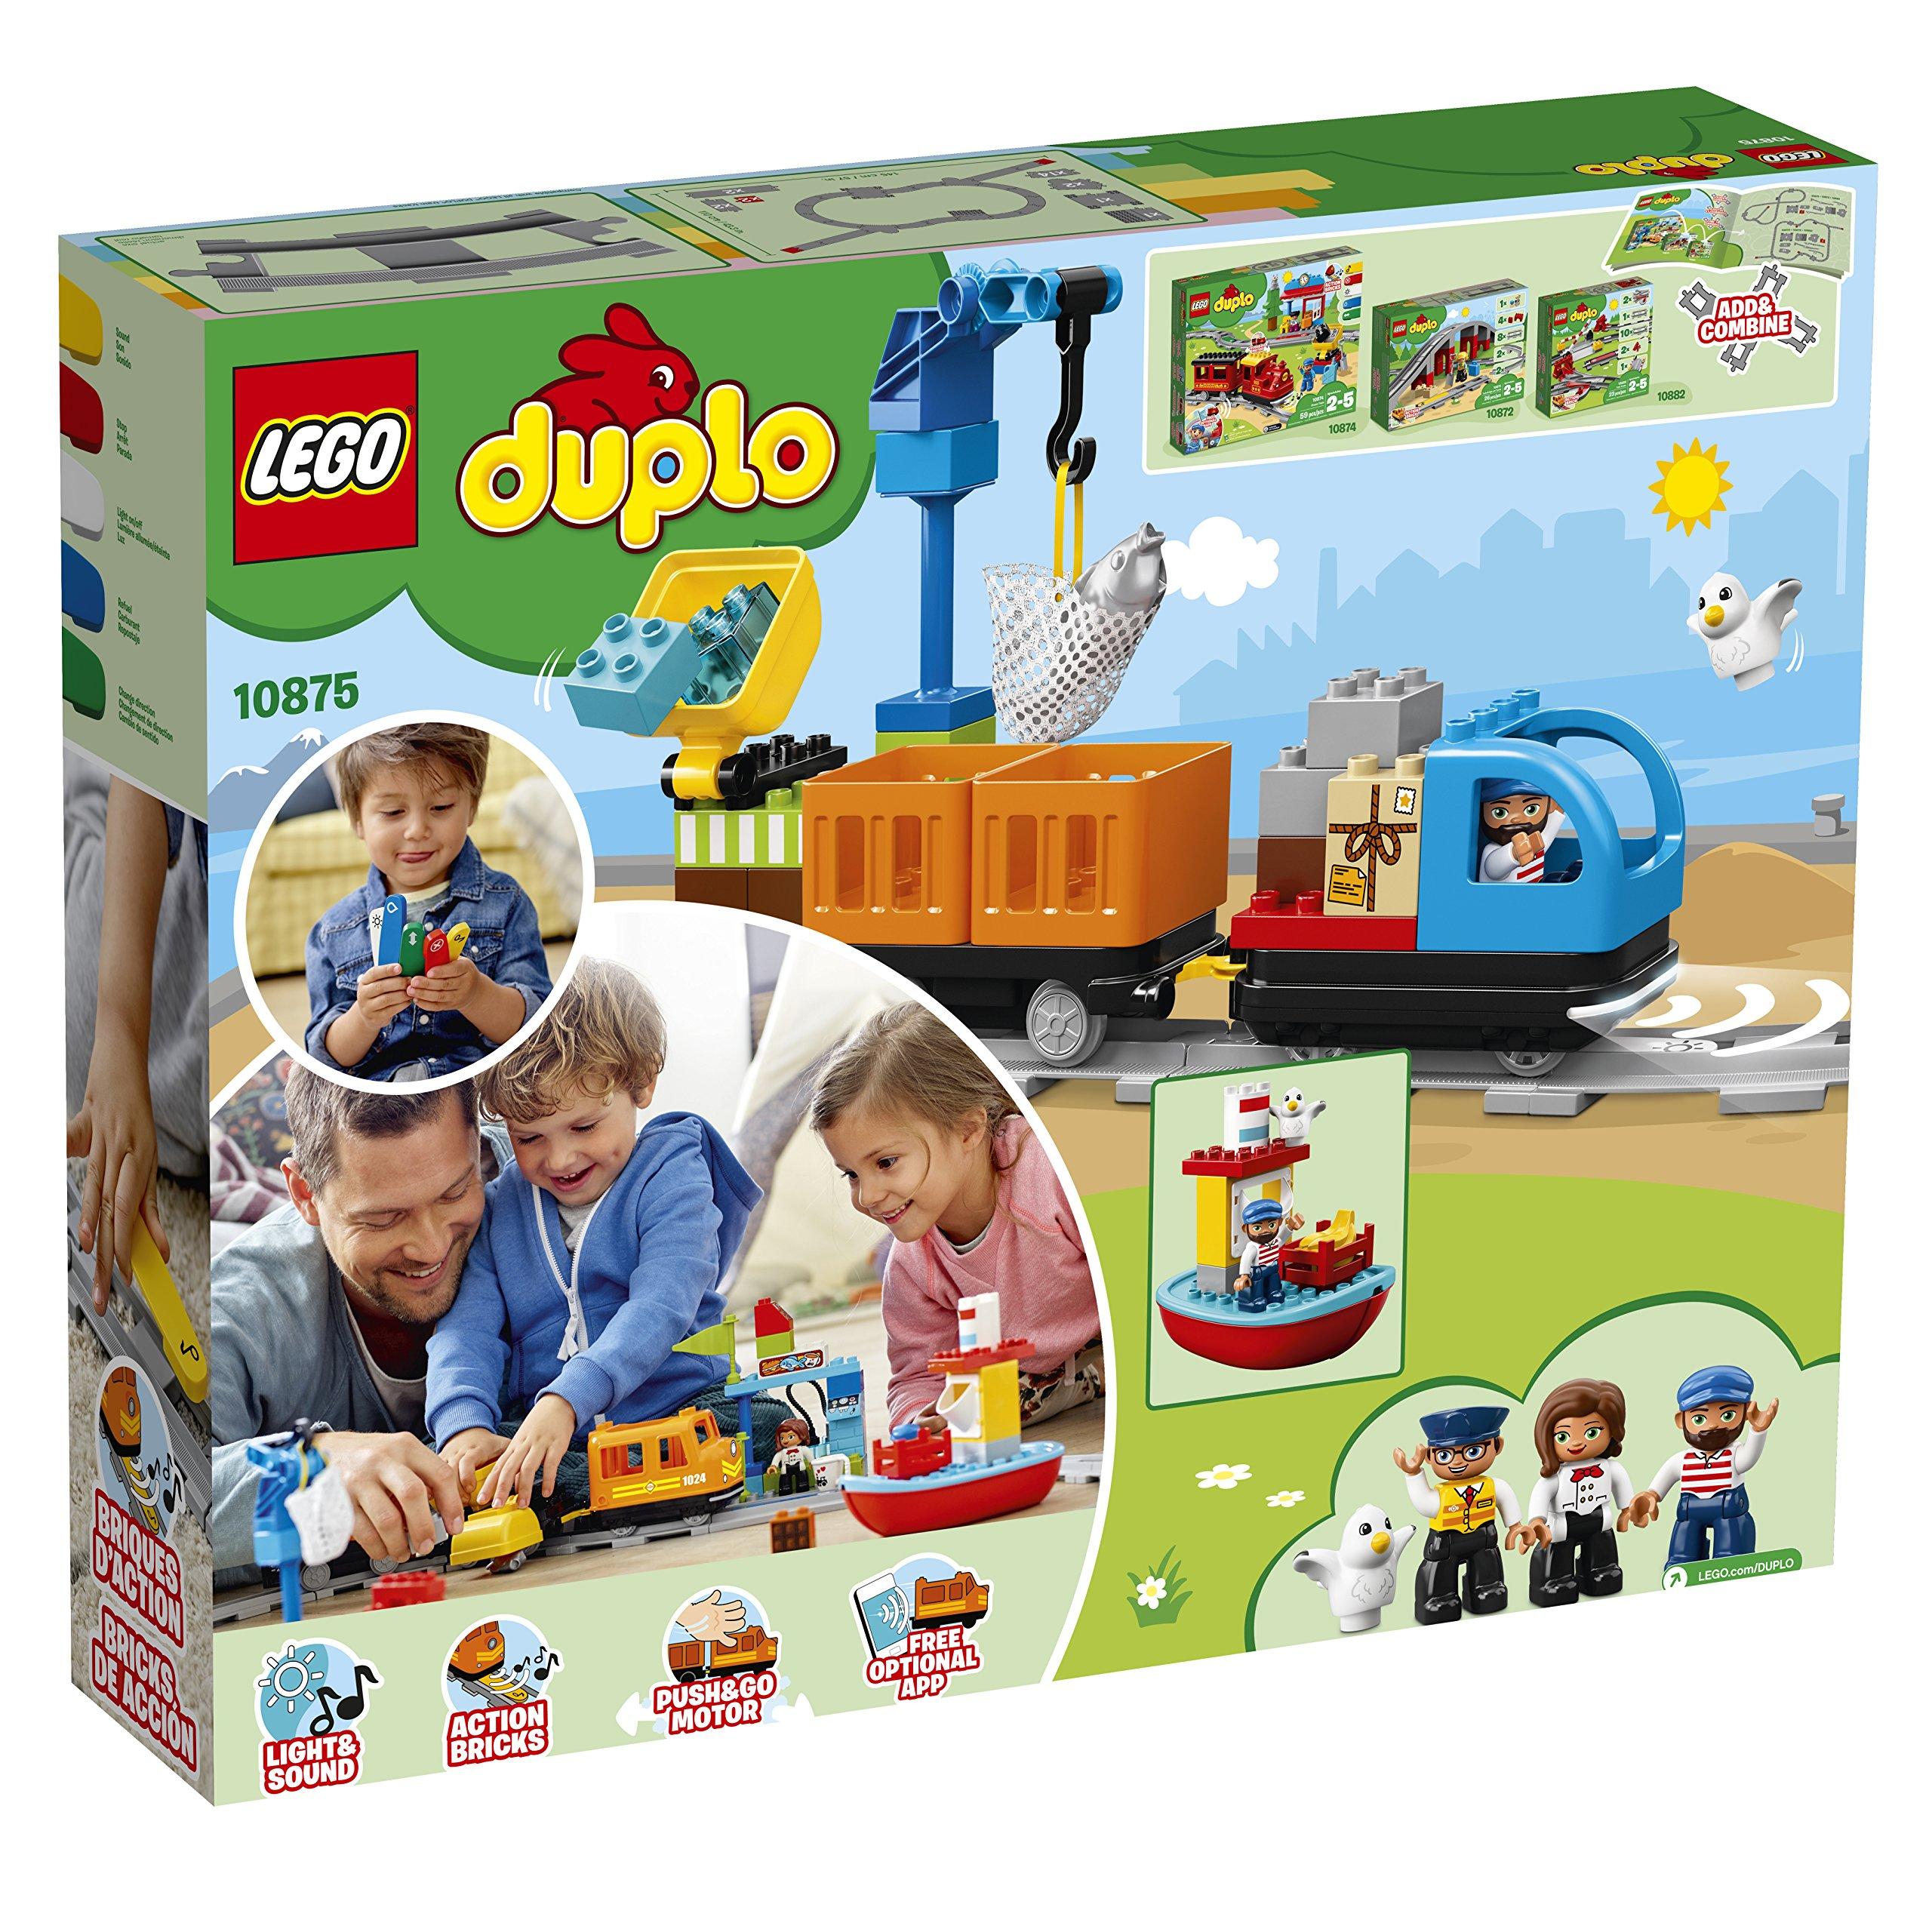 LEGO DUPLO Cargo Train 10875 Battery-Operated Building Blocks Set, Best Engineering and STEM Toy for Toddlers (105 Pieces) (Amazon Exclusive) by LEGO DUPLO Trains (Image #5)